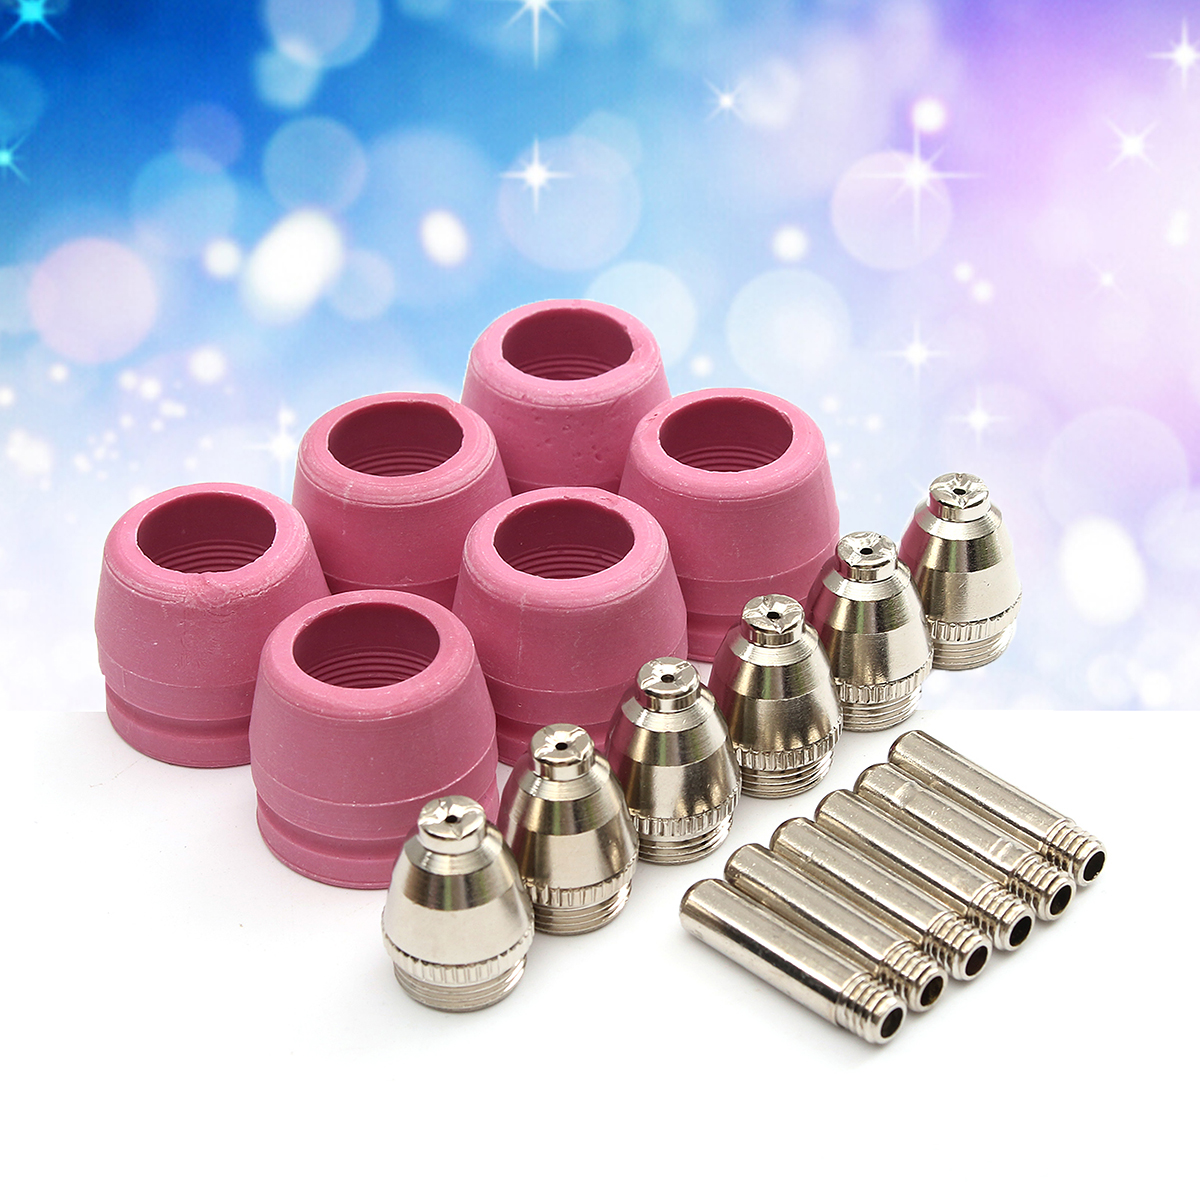 18Pcs Plasma Cutter Torch Consumables Nozzle Tip Electrode For AG60 / SG55 Welding Parts and Accessories